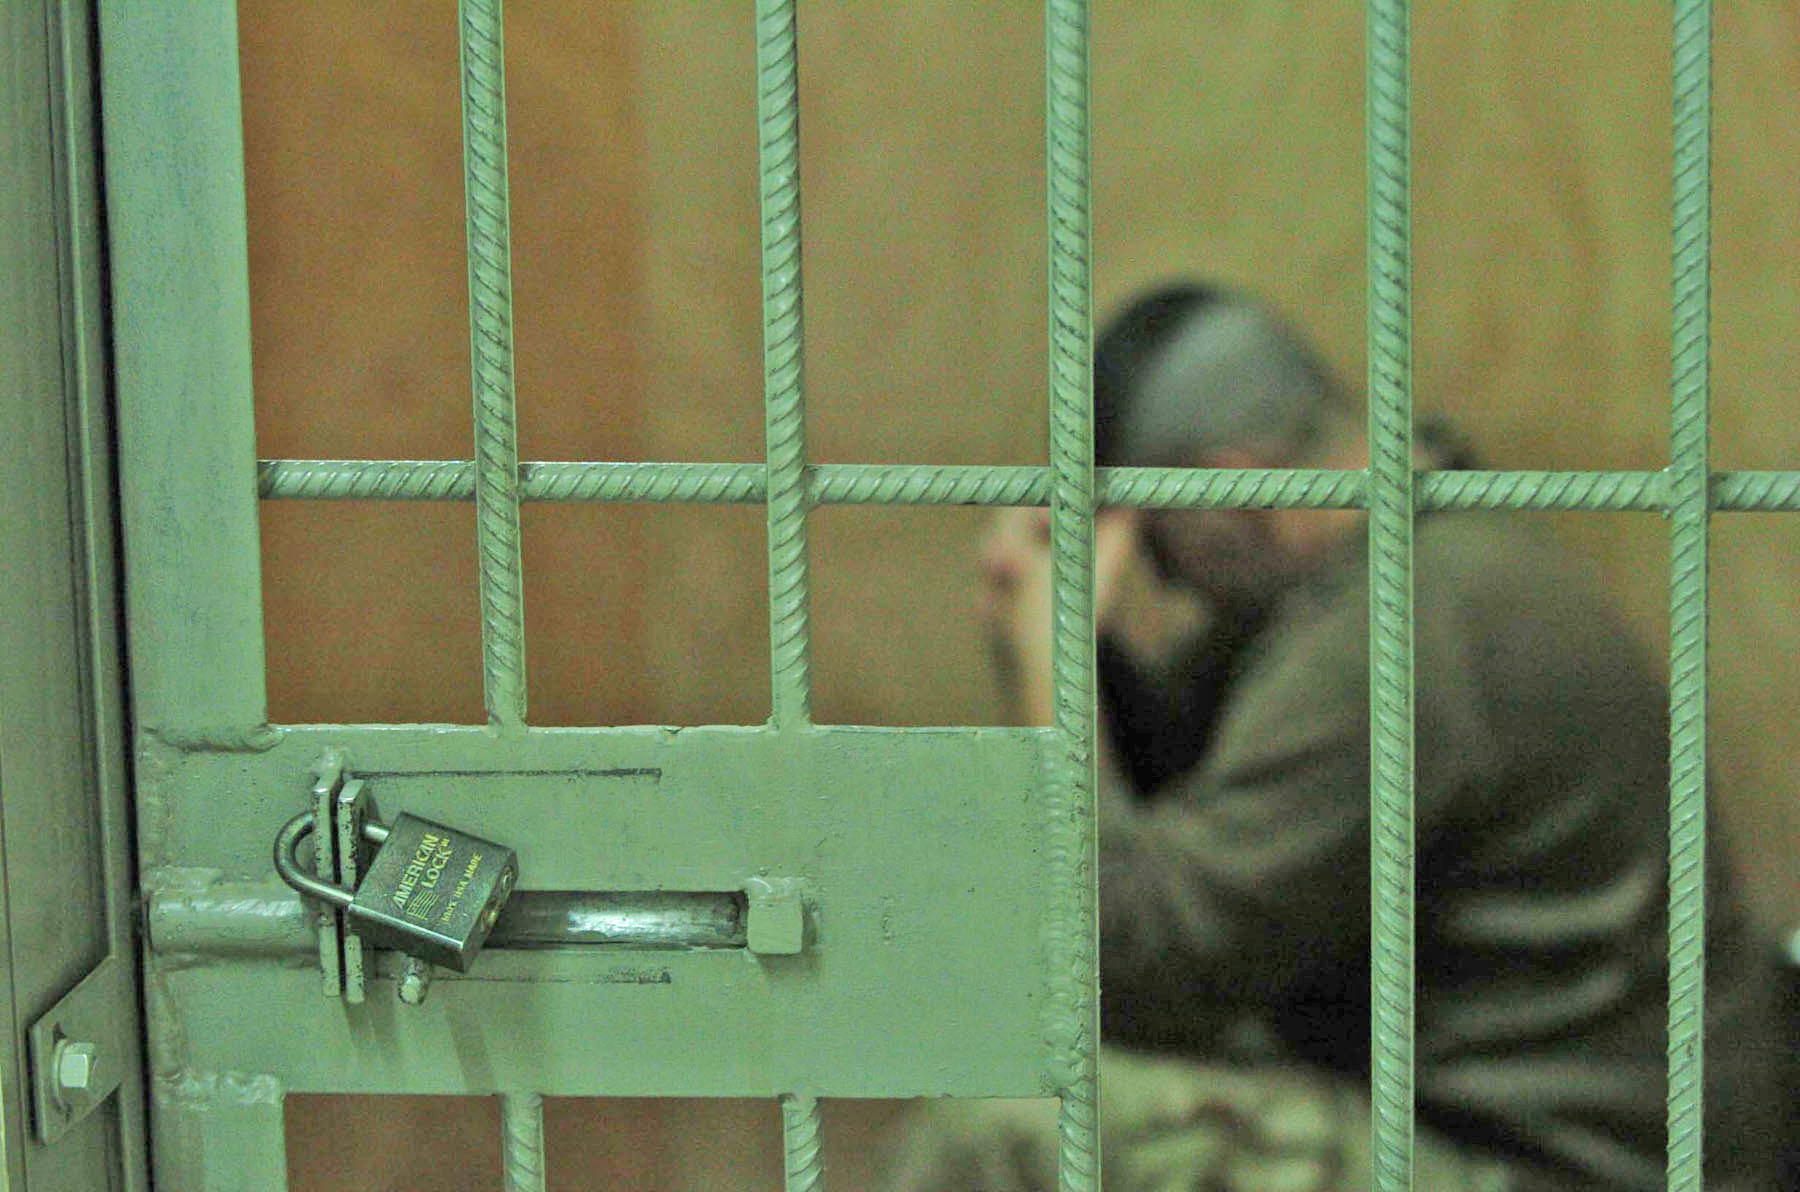 A British Army soldier will be spending time behind bars for abusing recruits. (U.S. Army)